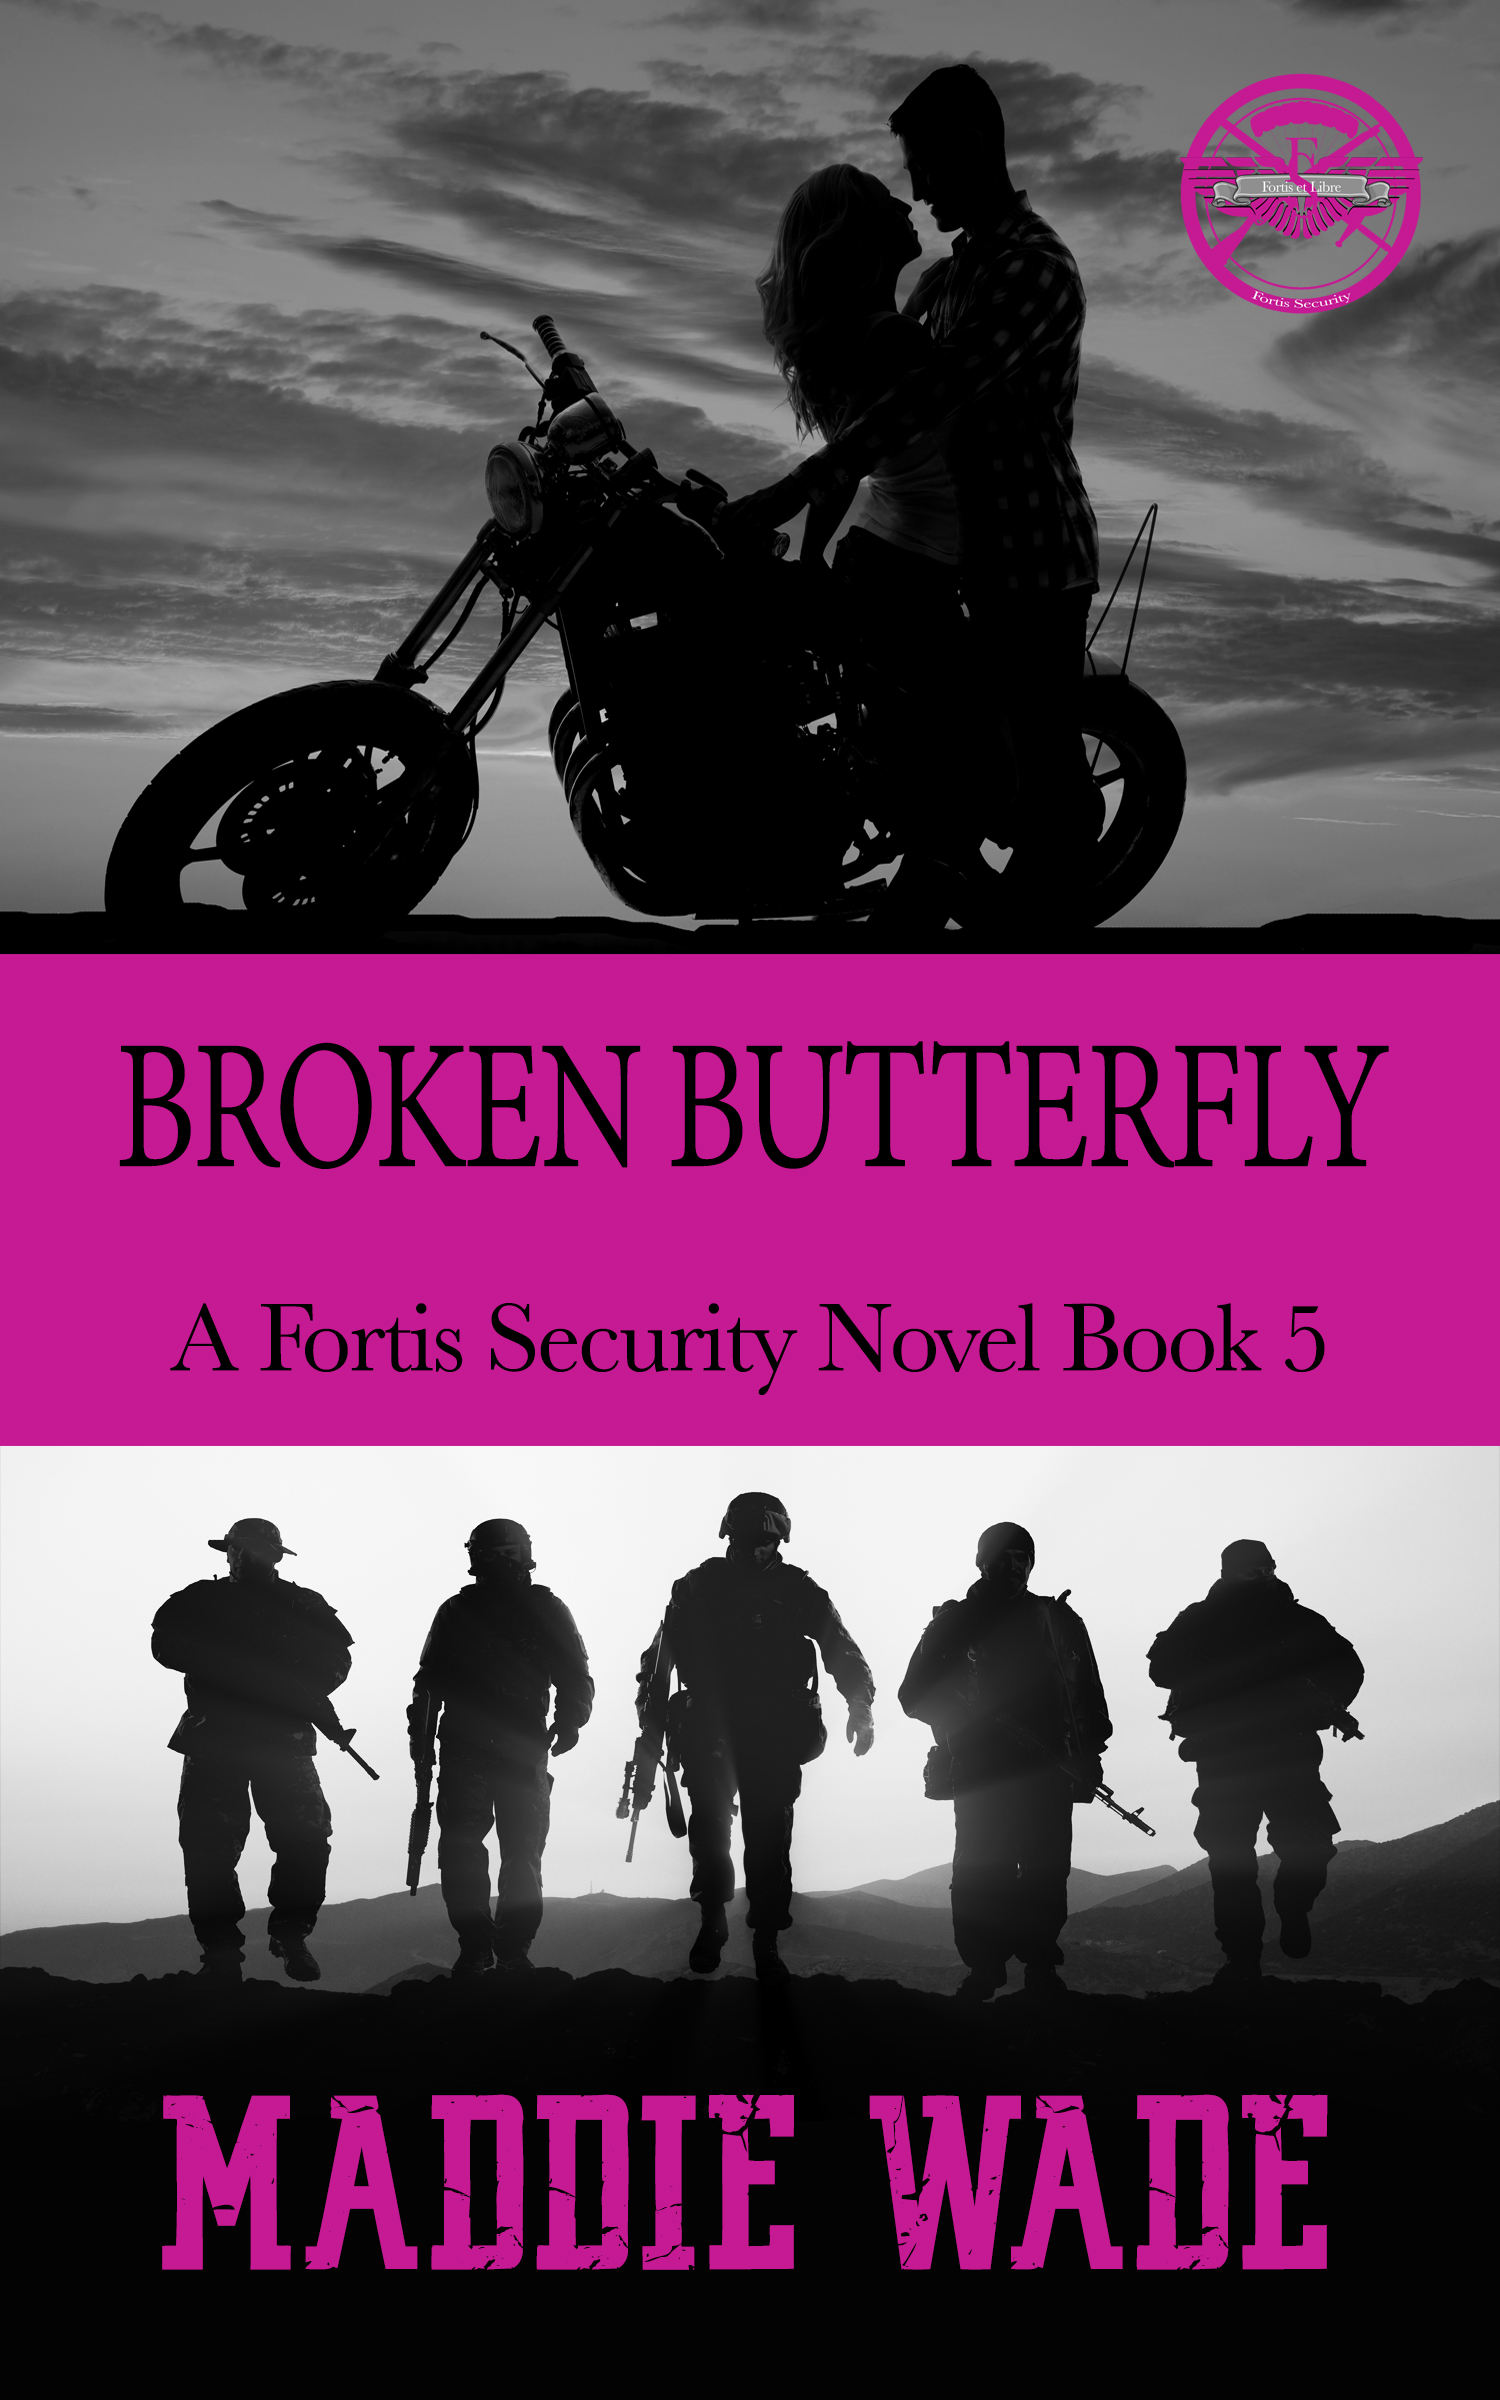 image of book cover named broken butterfly